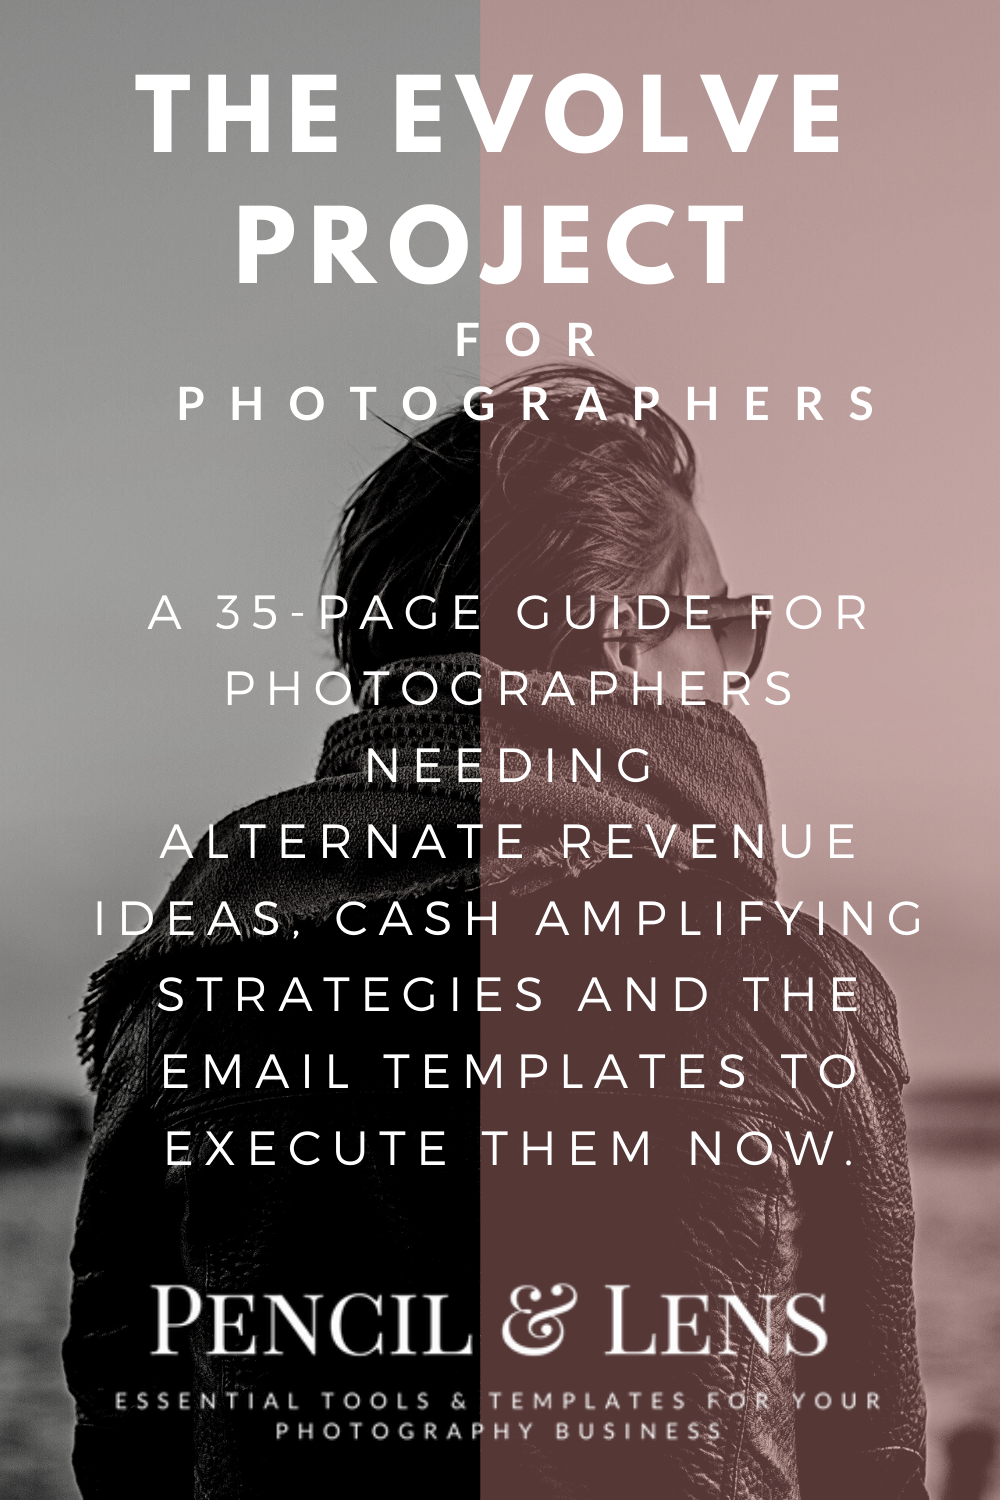 The Evolve Project Guide: Photographer's Edition